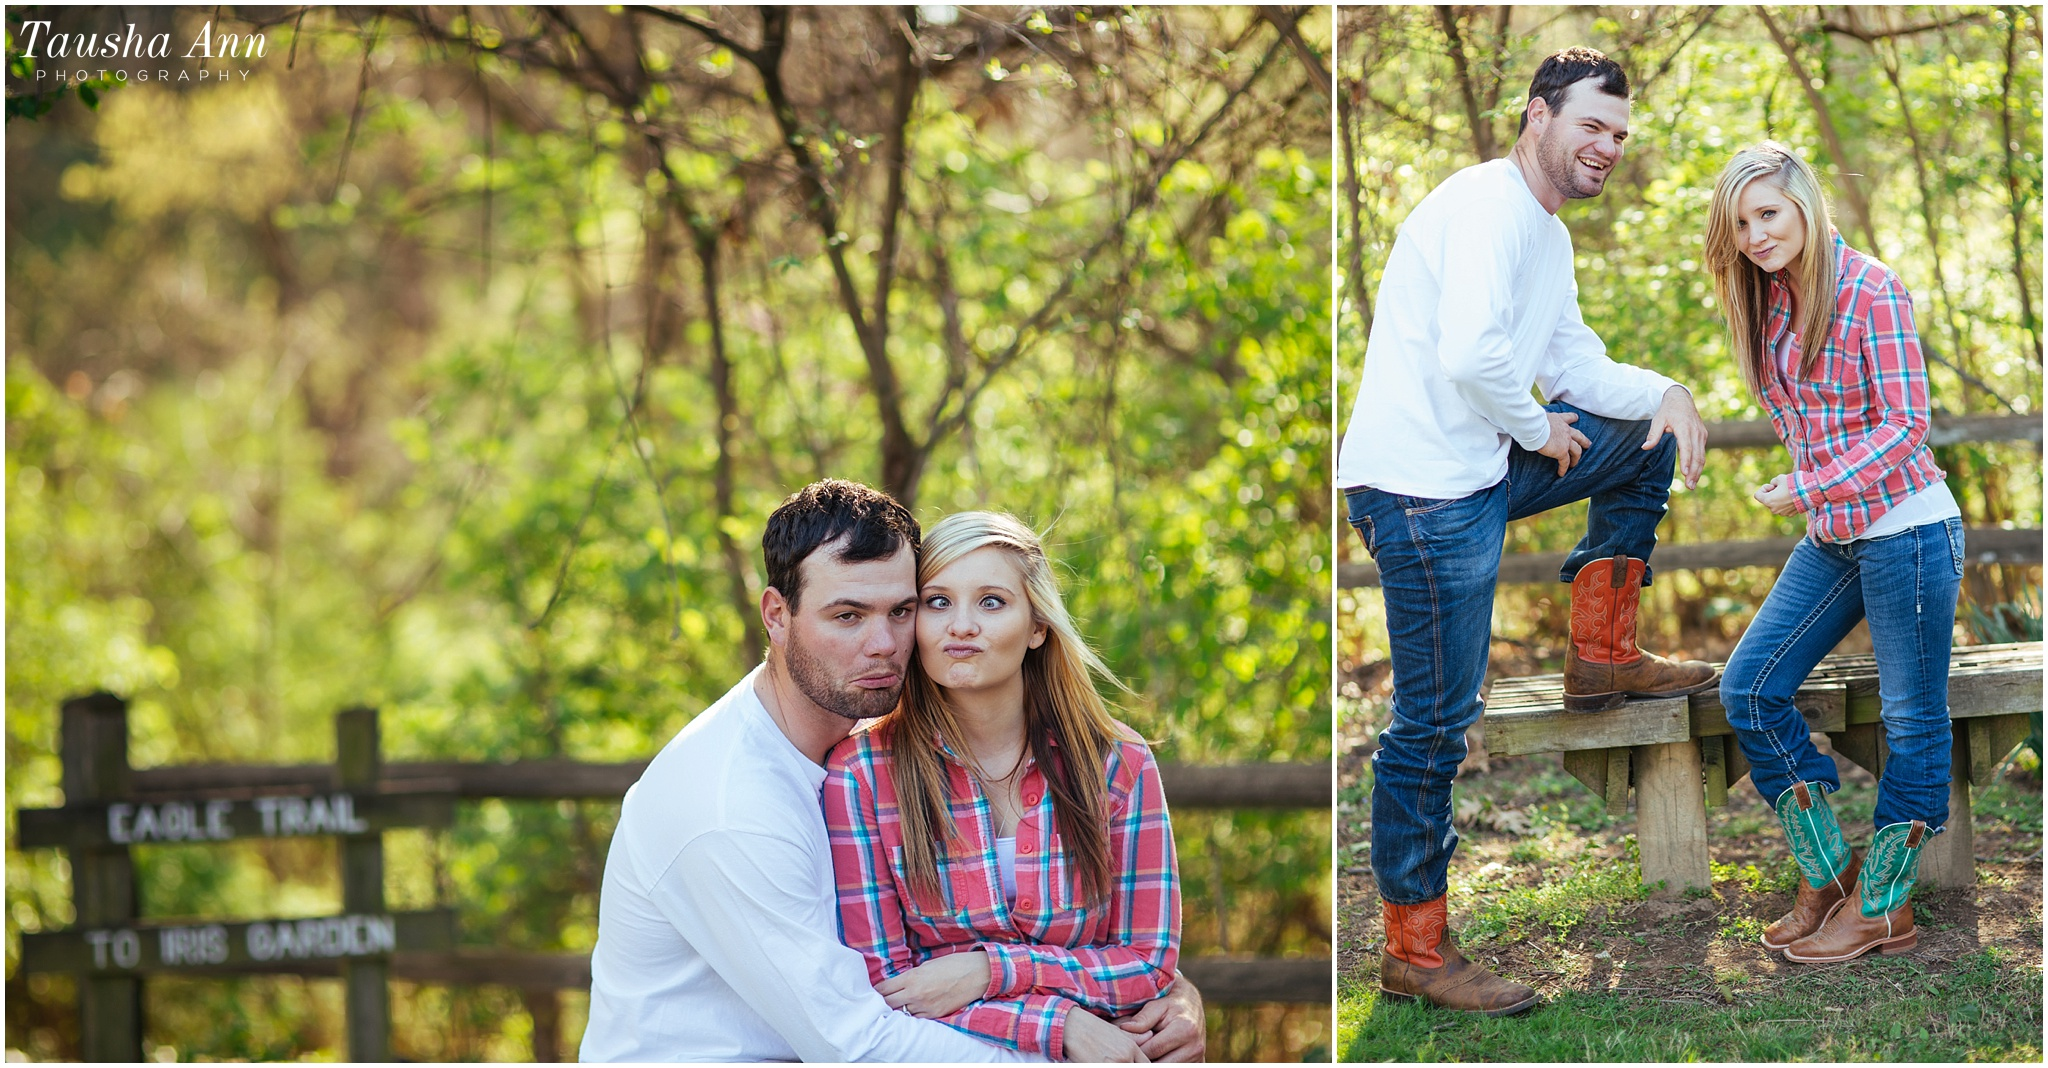 Casey_Brianna_Engagement_Agricultural_Center_Nashville_Wedding_Photography_0008